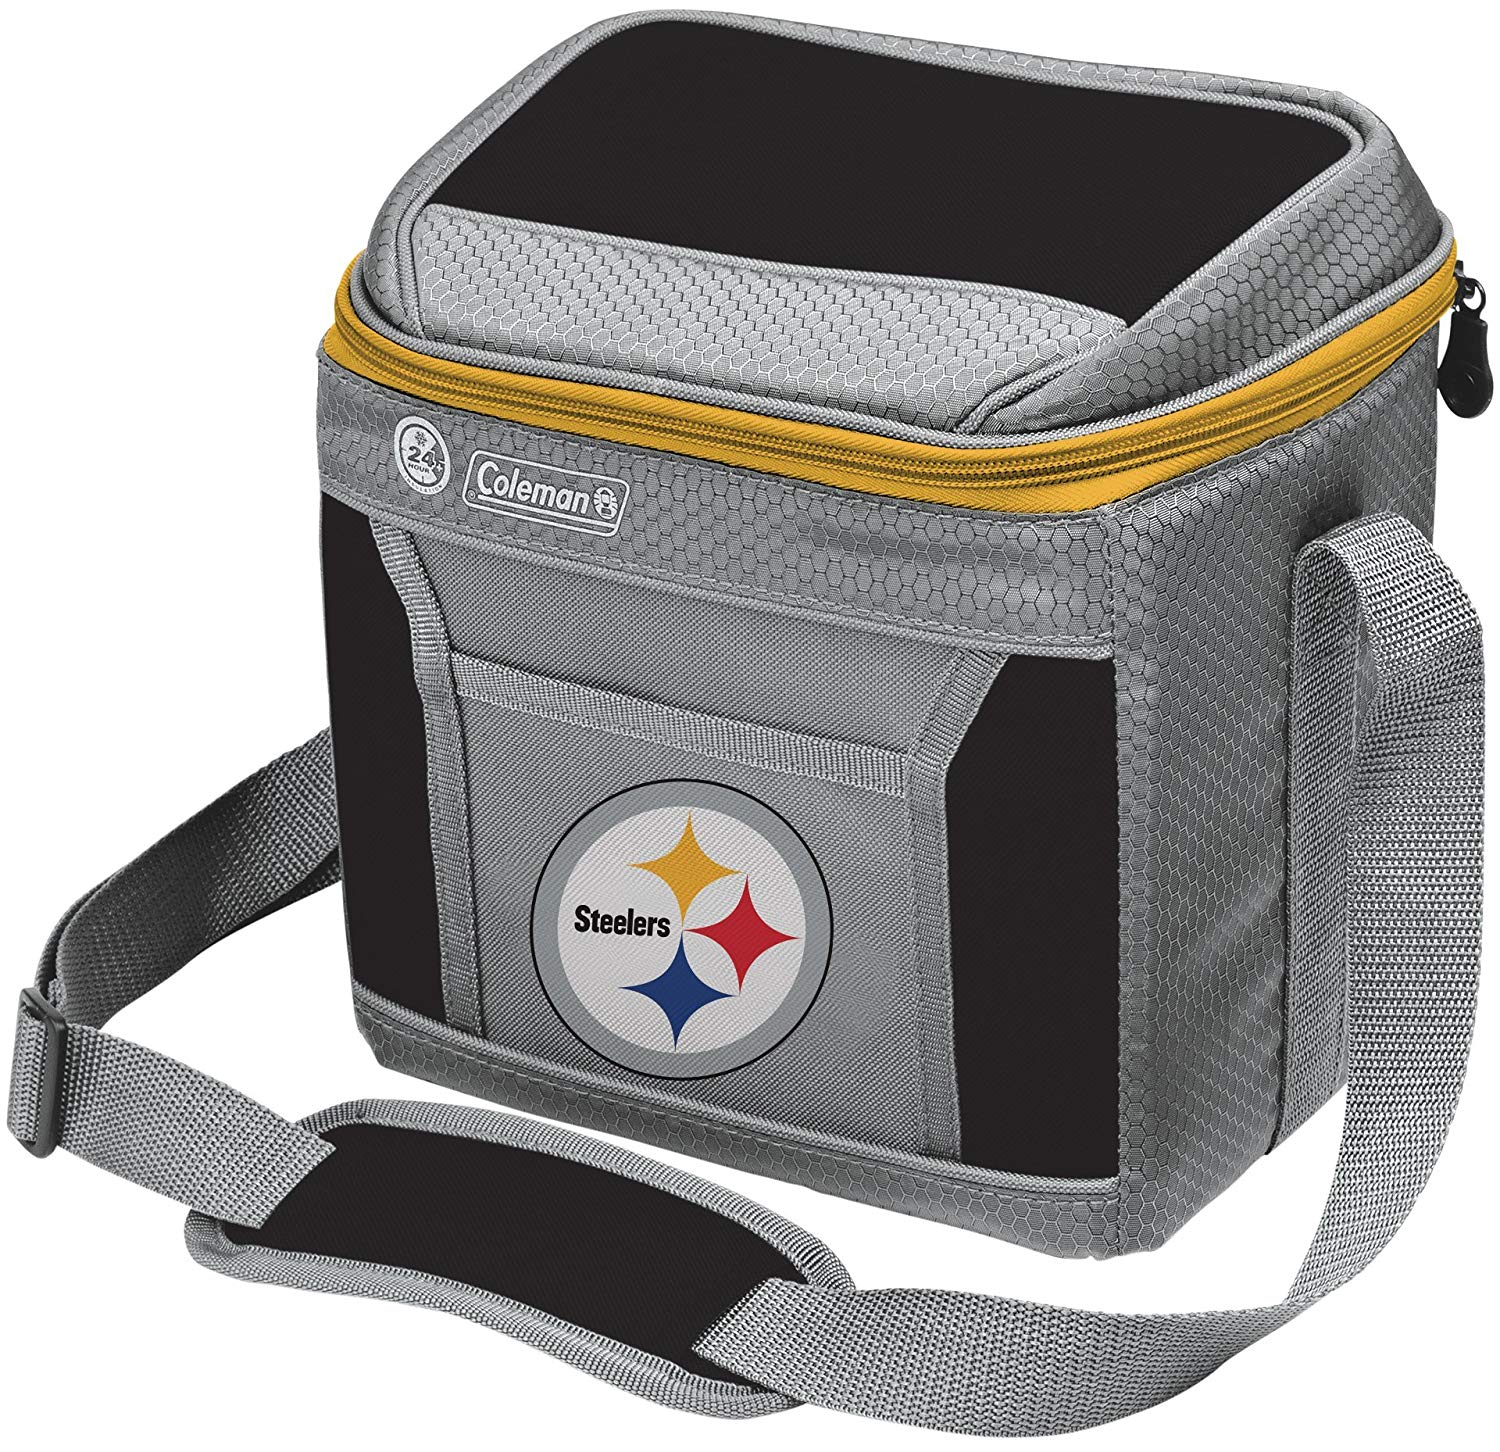 Steelers Soft-Sided Insulated Cooler and Lunch Box Bag